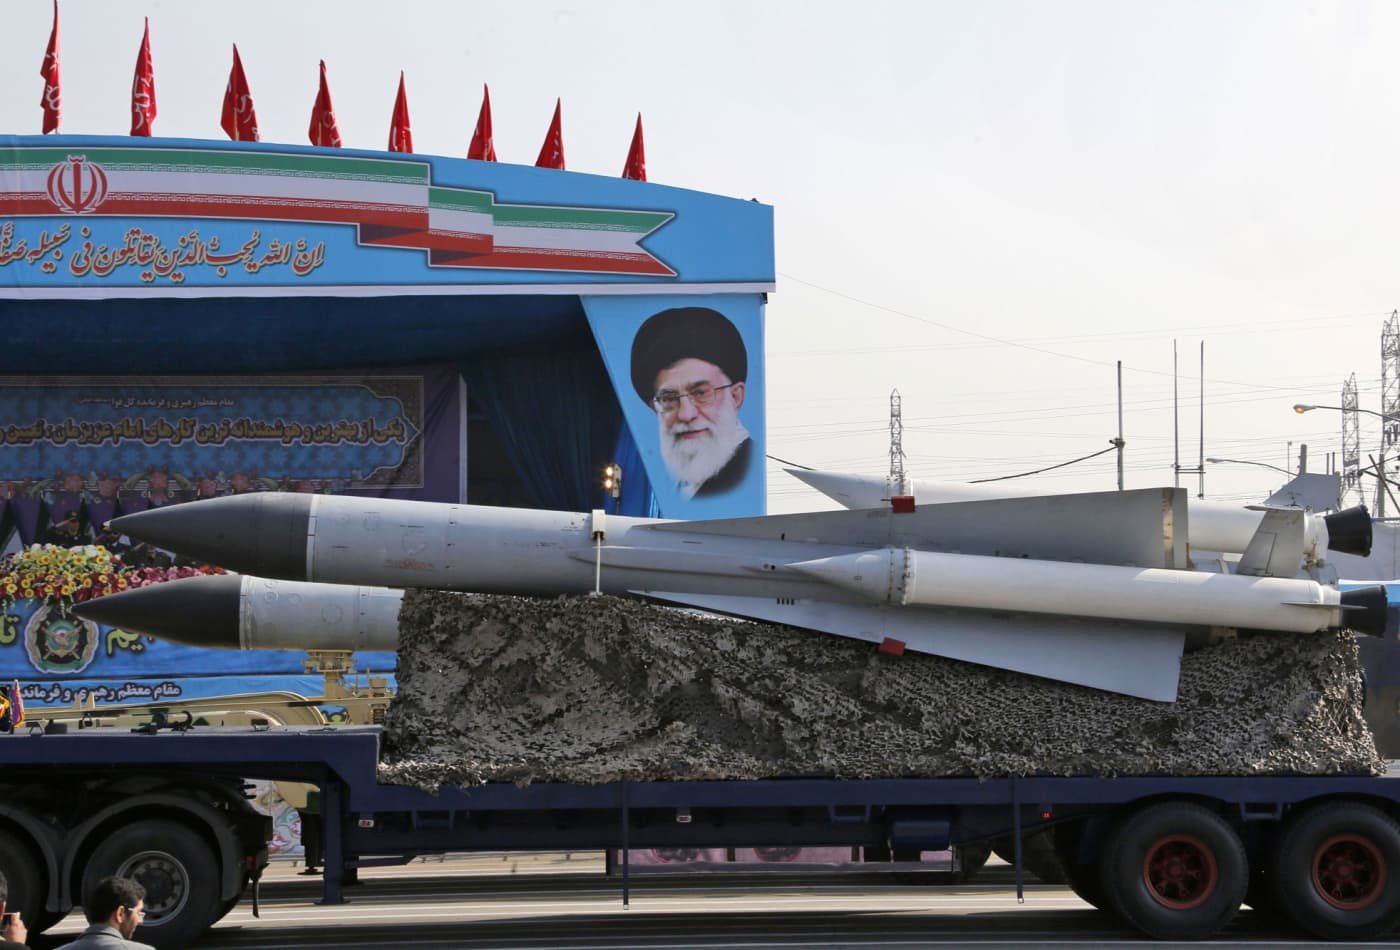 Iran celebrates 'momentous day' as UN arms embargo lifts. Here's what it means